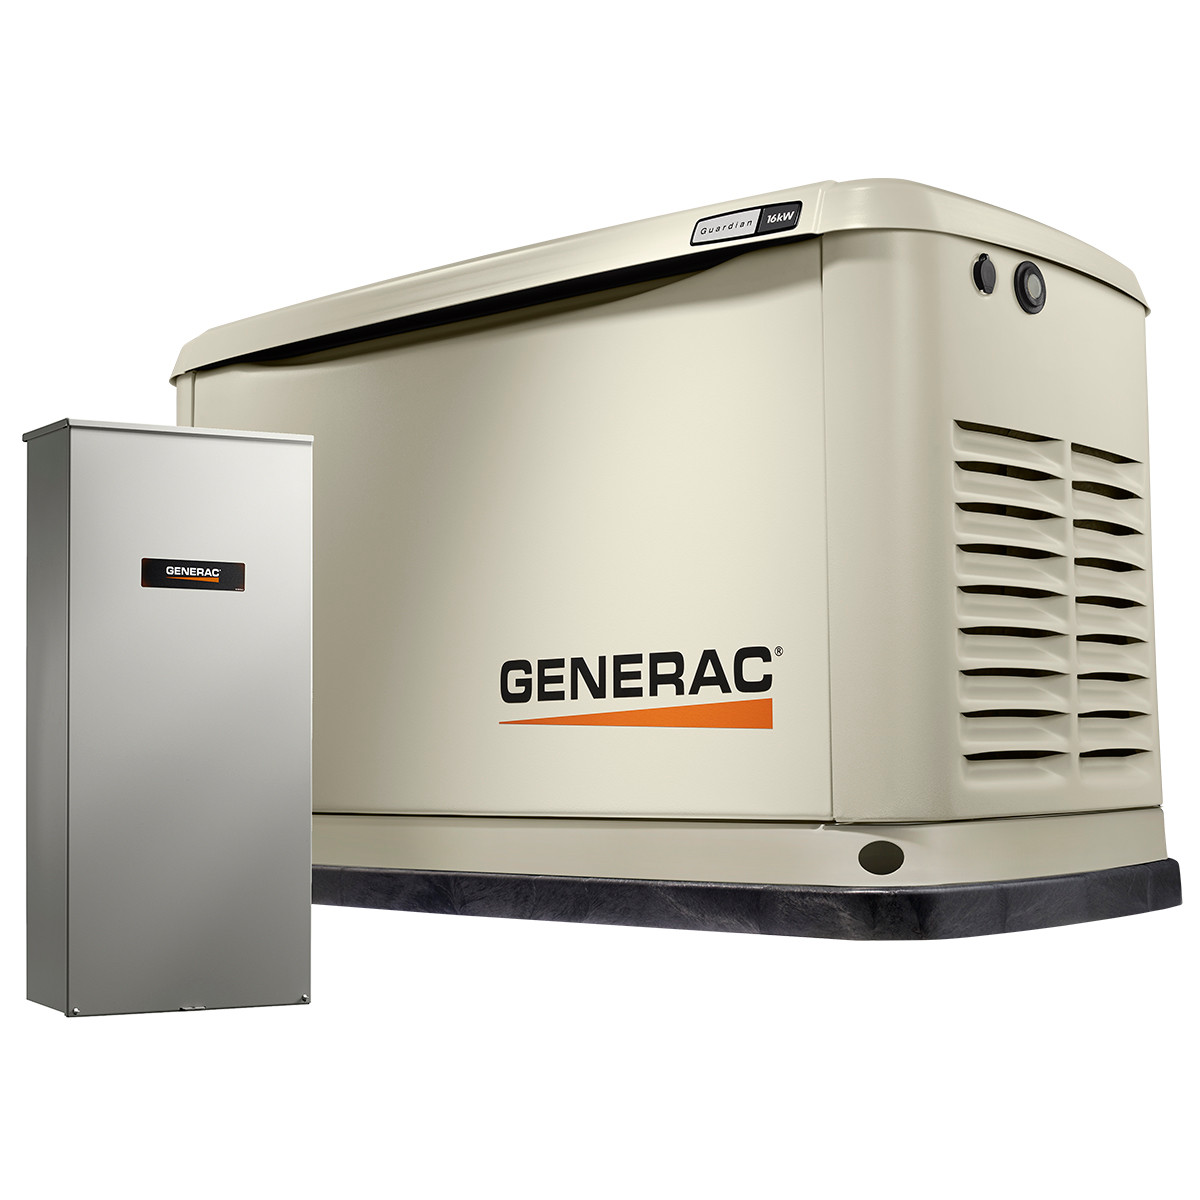 Generac 7036 16kW Guardian Generator with Wi-Fi & 100A 16-circuit Transfer  Switch